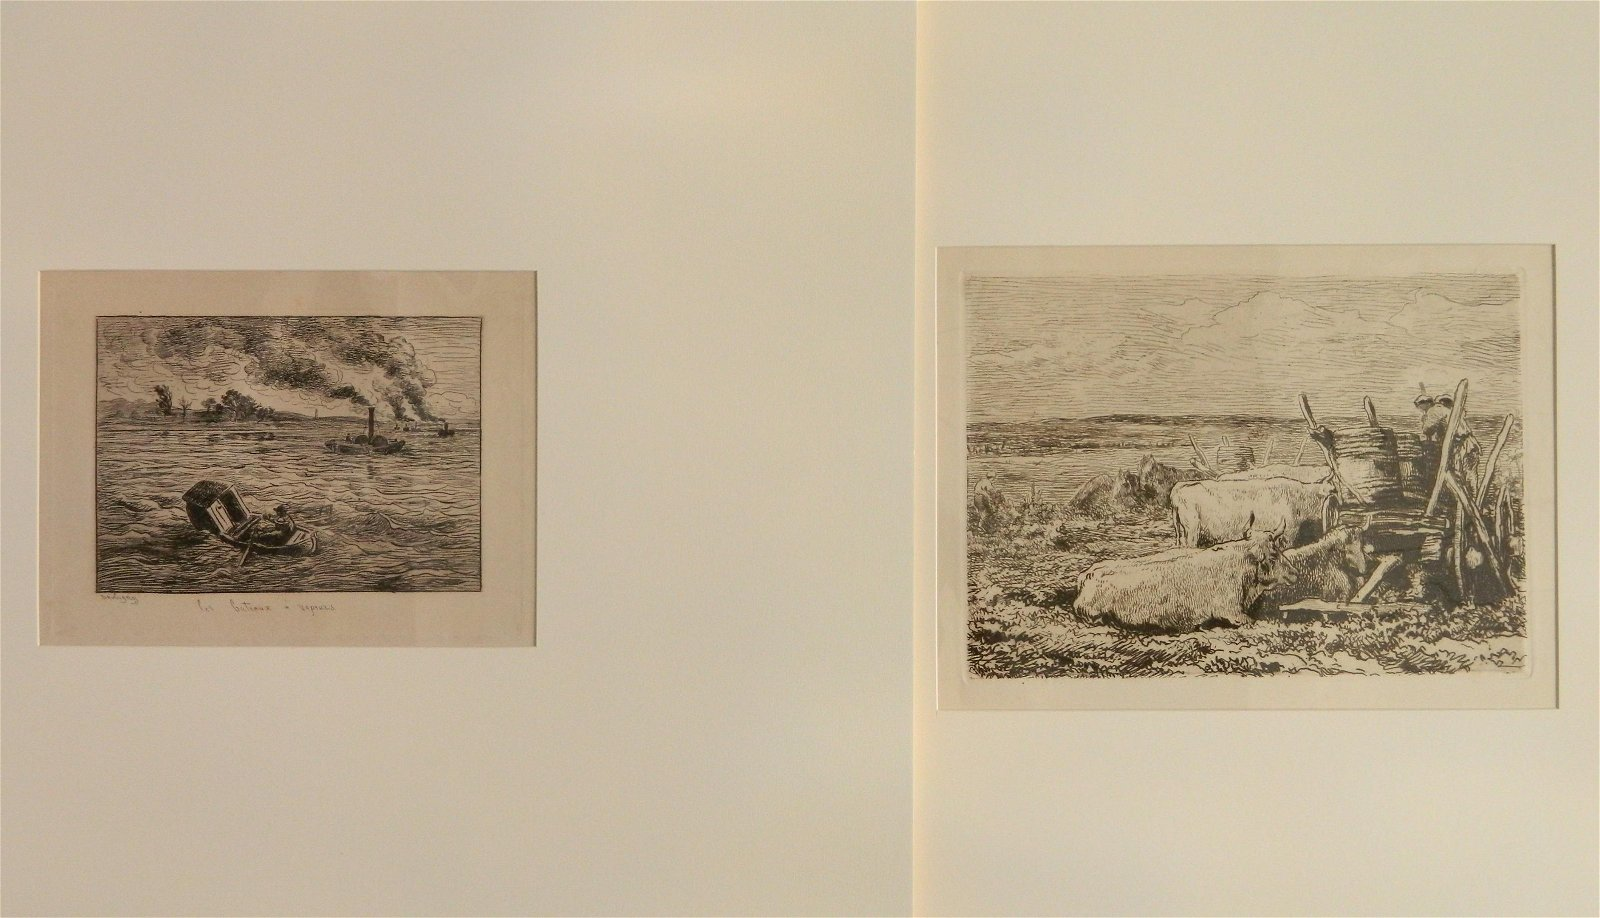 2 Charles Daubigny etchings